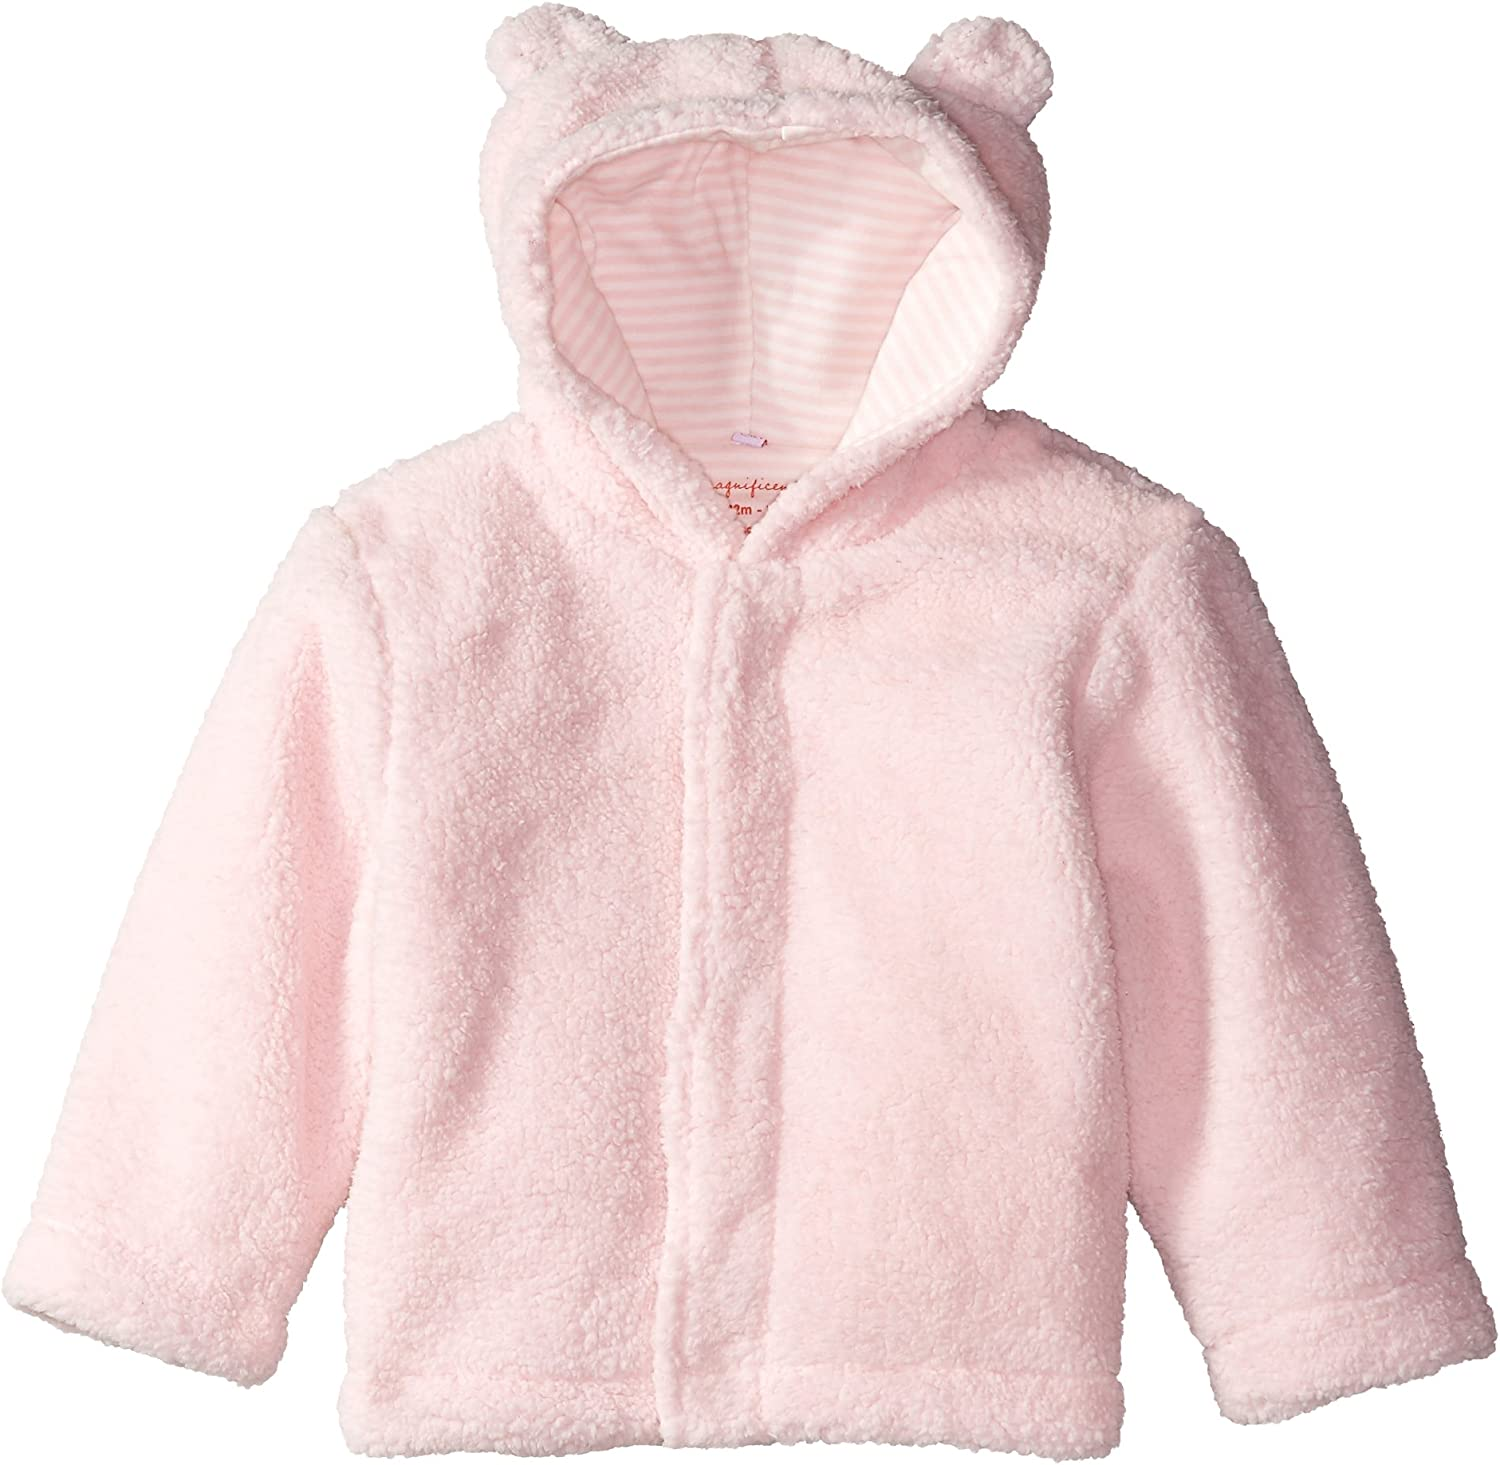 Magnificent Baby Baby Girls Smart Bear Pink Icing Hooded Fleece Jacket